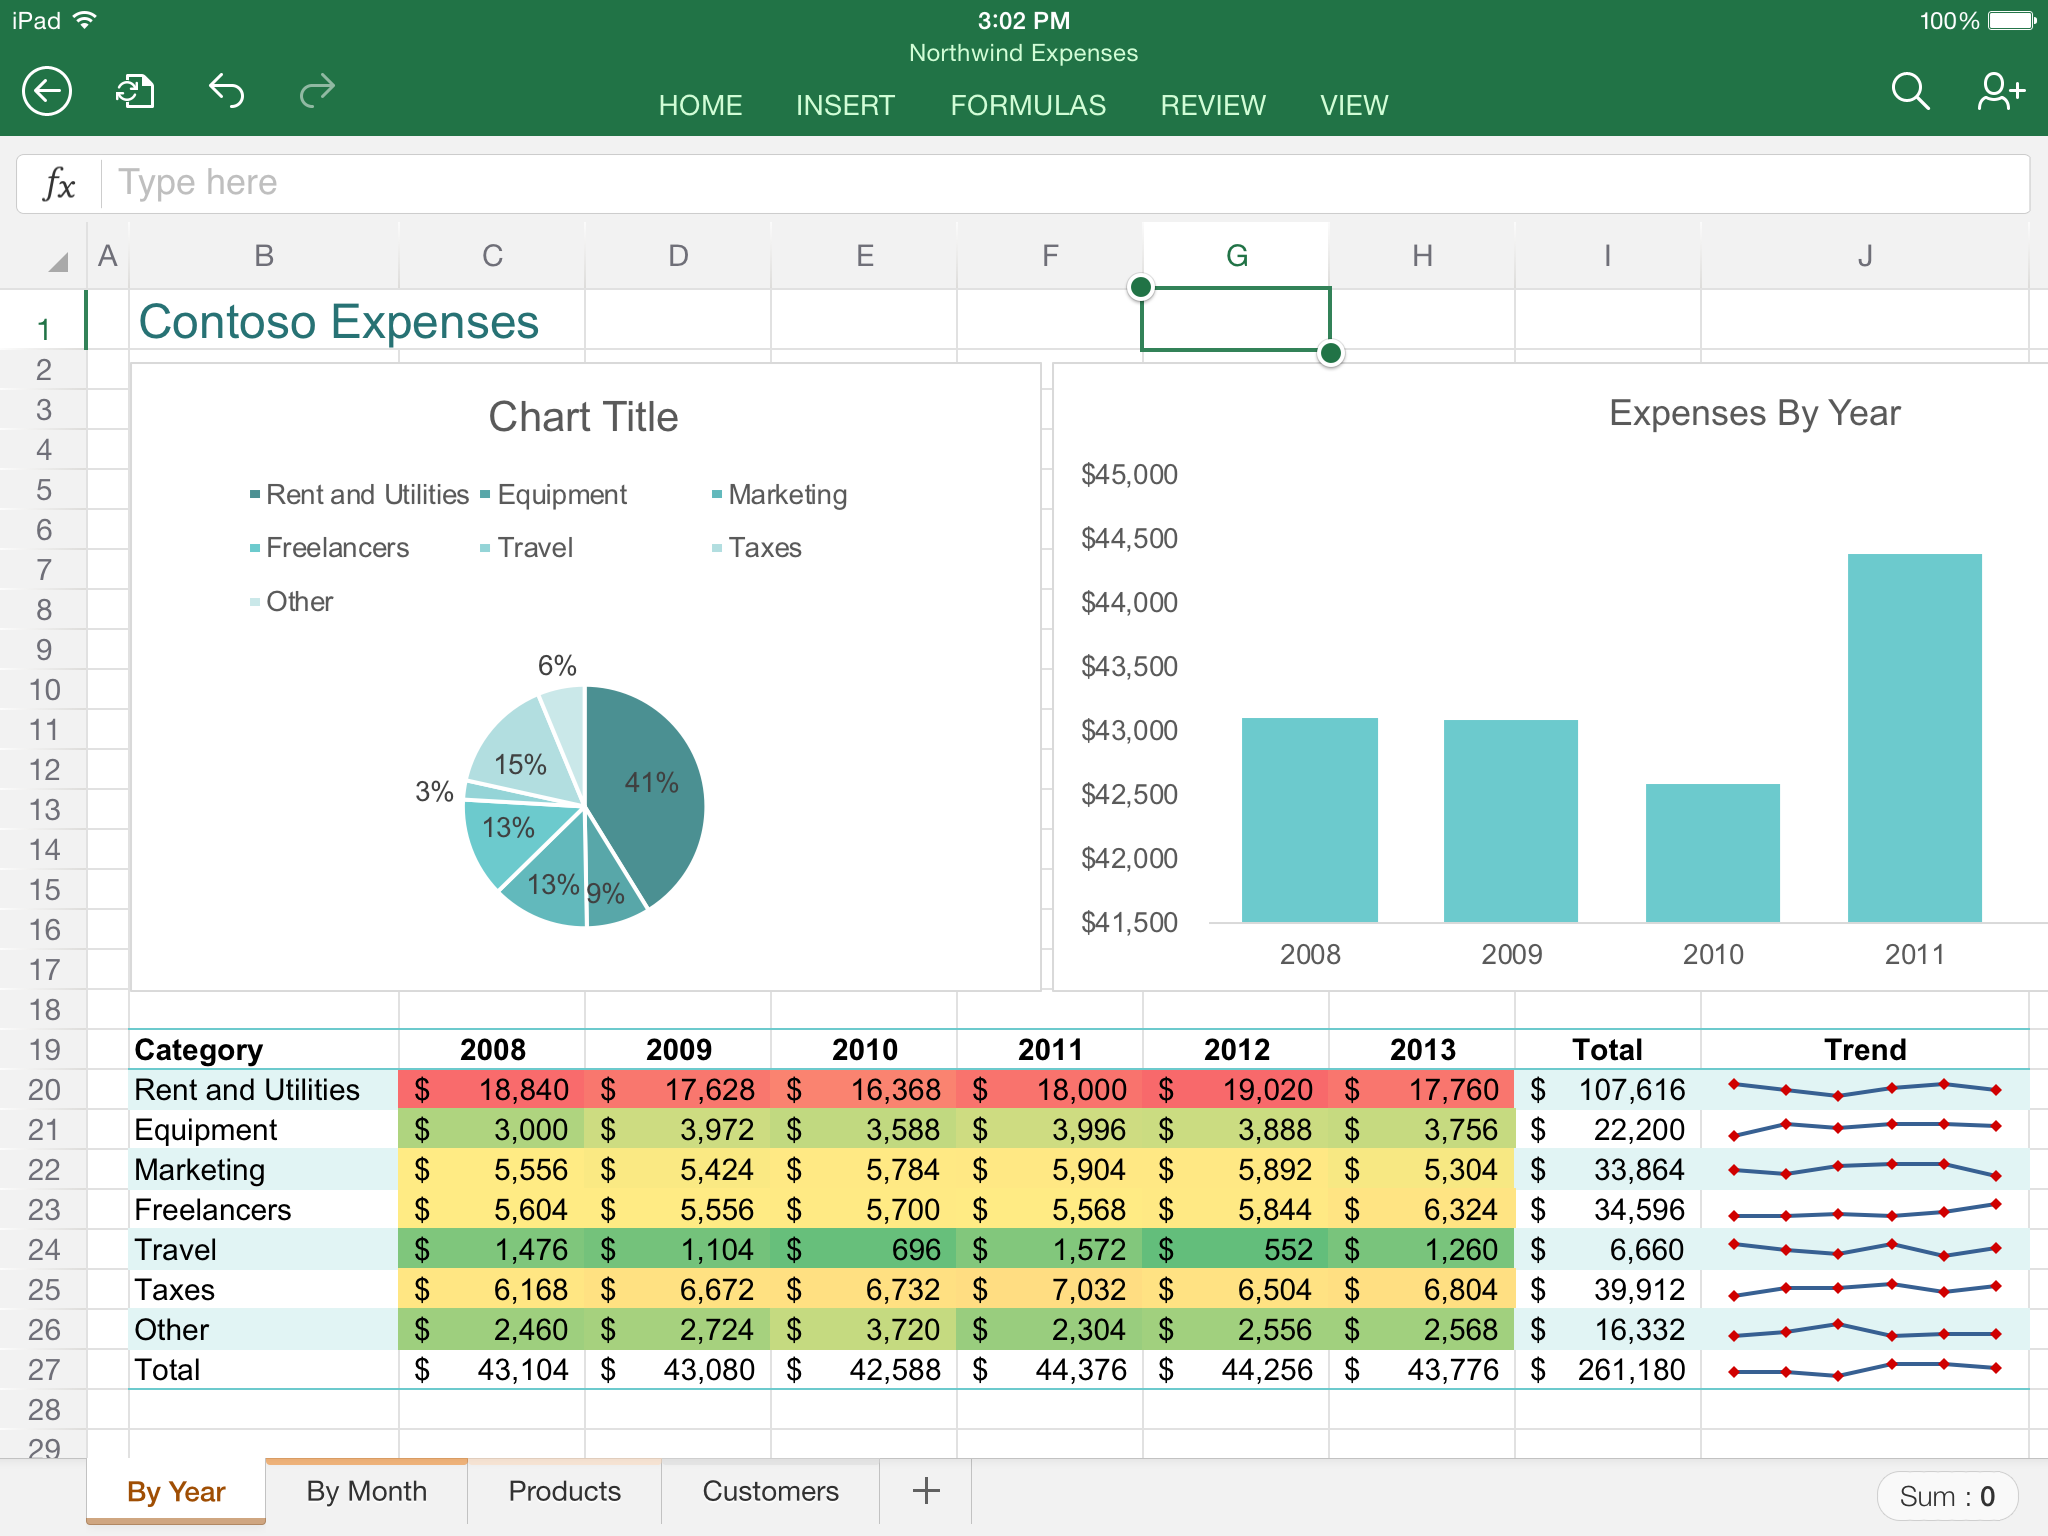 Ediblewildsus  Fascinating App Highlight Excel  Mobile Digital Now With Luxury Excel In Action With Attractive Convert Excel To Latex Also Create Graph In Excel  In Addition Excel Compatibility Mode  And Excel On Macbook Pro As Well As Excel Cost Analysis Additionally Monthly Compound Interest Formula Excel From Youstonybrookedu With Ediblewildsus  Luxury App Highlight Excel  Mobile Digital Now With Attractive Excel In Action And Fascinating Convert Excel To Latex Also Create Graph In Excel  In Addition Excel Compatibility Mode  From Youstonybrookedu